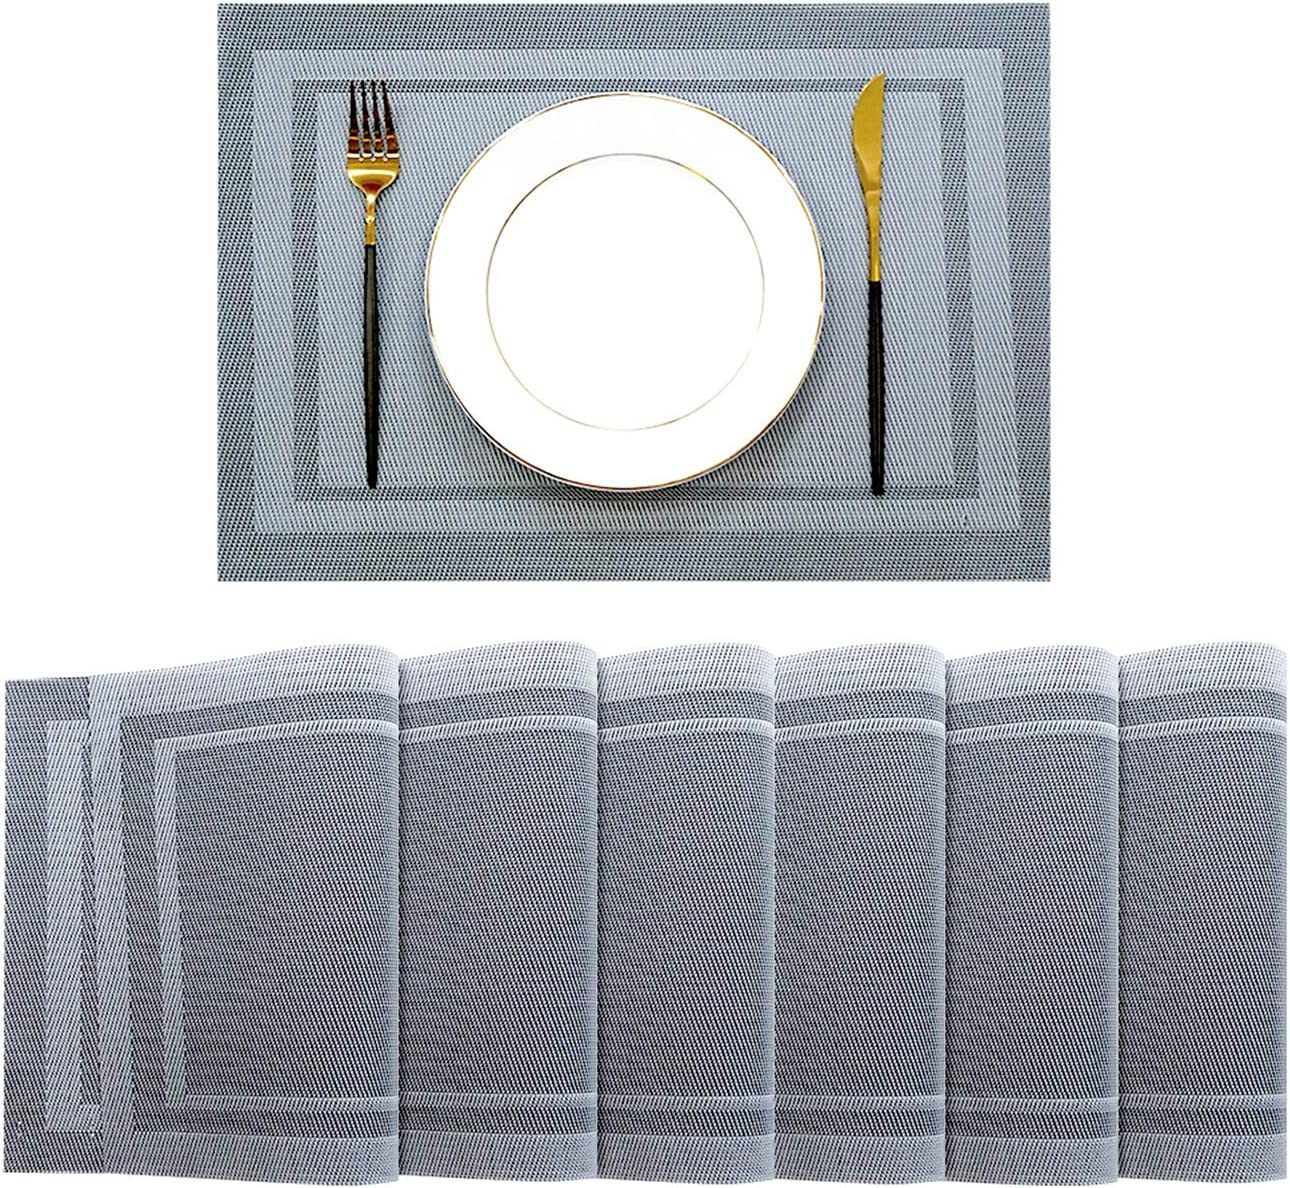 ACWARM HOME Placemats Set of 6 , Table Mats for Dining Kitchen Table, Vinyl Non-Slip Washable PVC Heat Resistant Woven Place Mats (Gray)